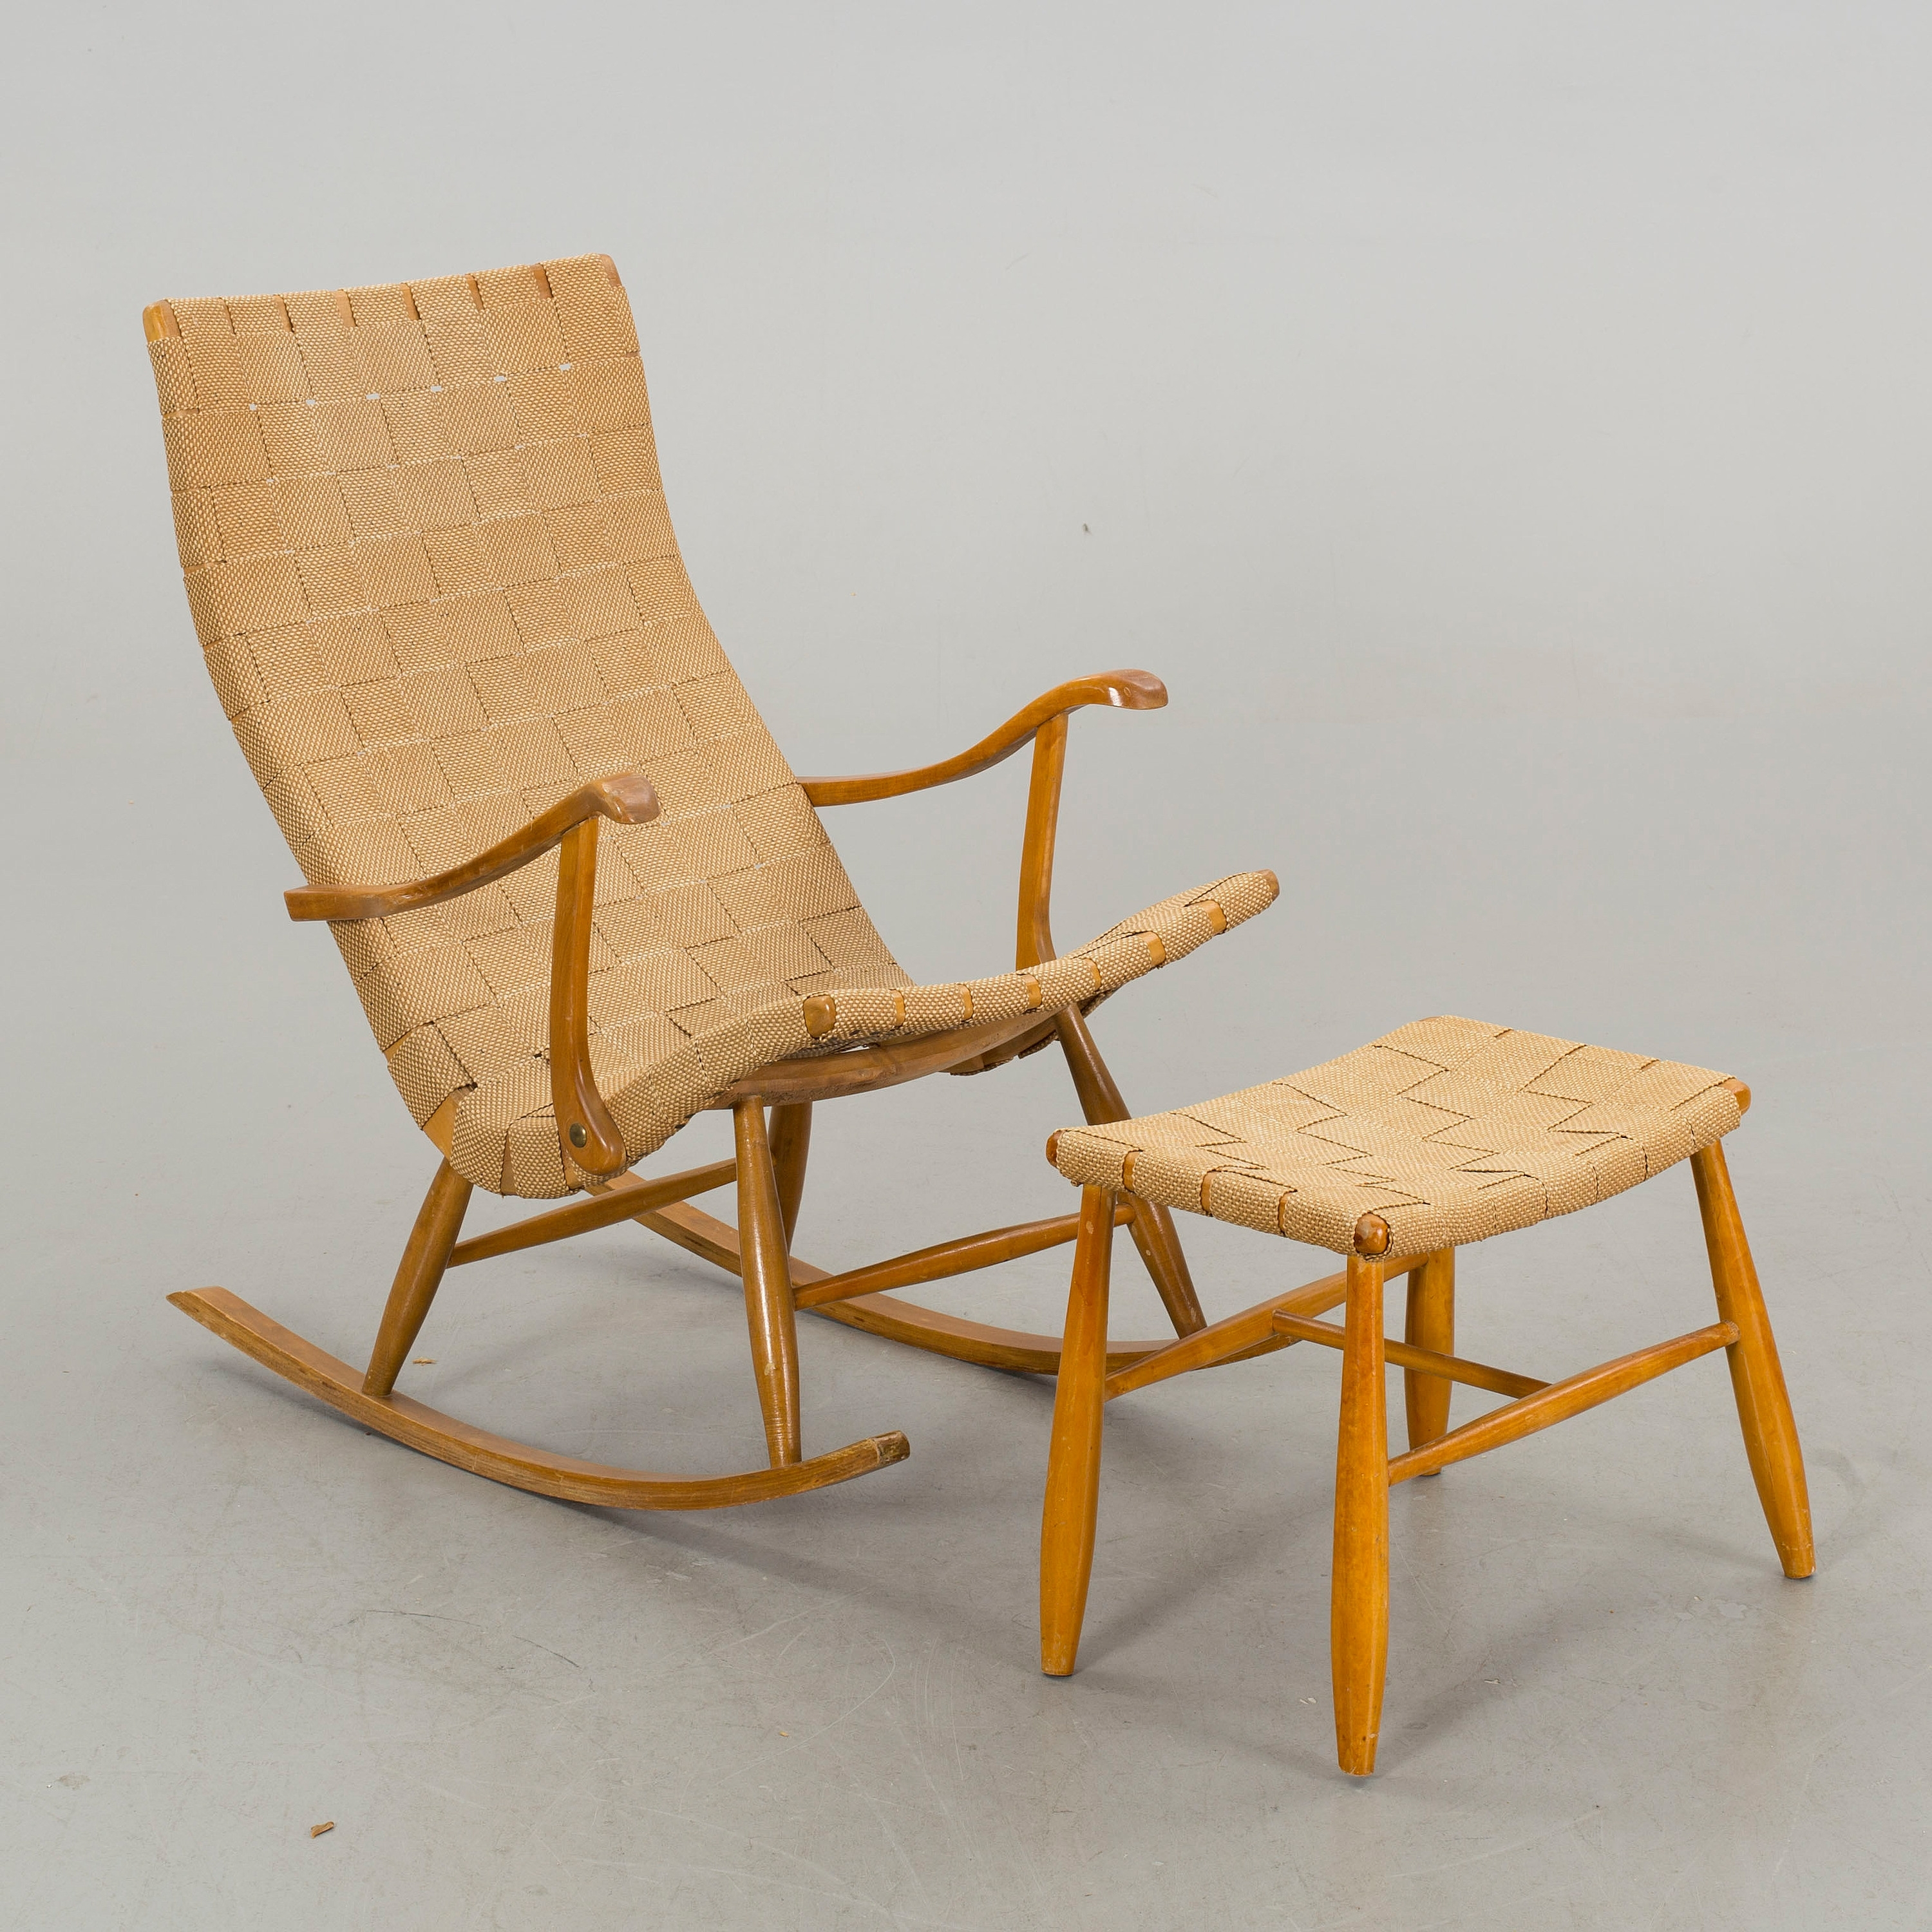 Rocking Chairs With Footstool In Preferred A Rocking Chair With Footstool, 1940/50s, – Bukowskis (View 14 of 20)